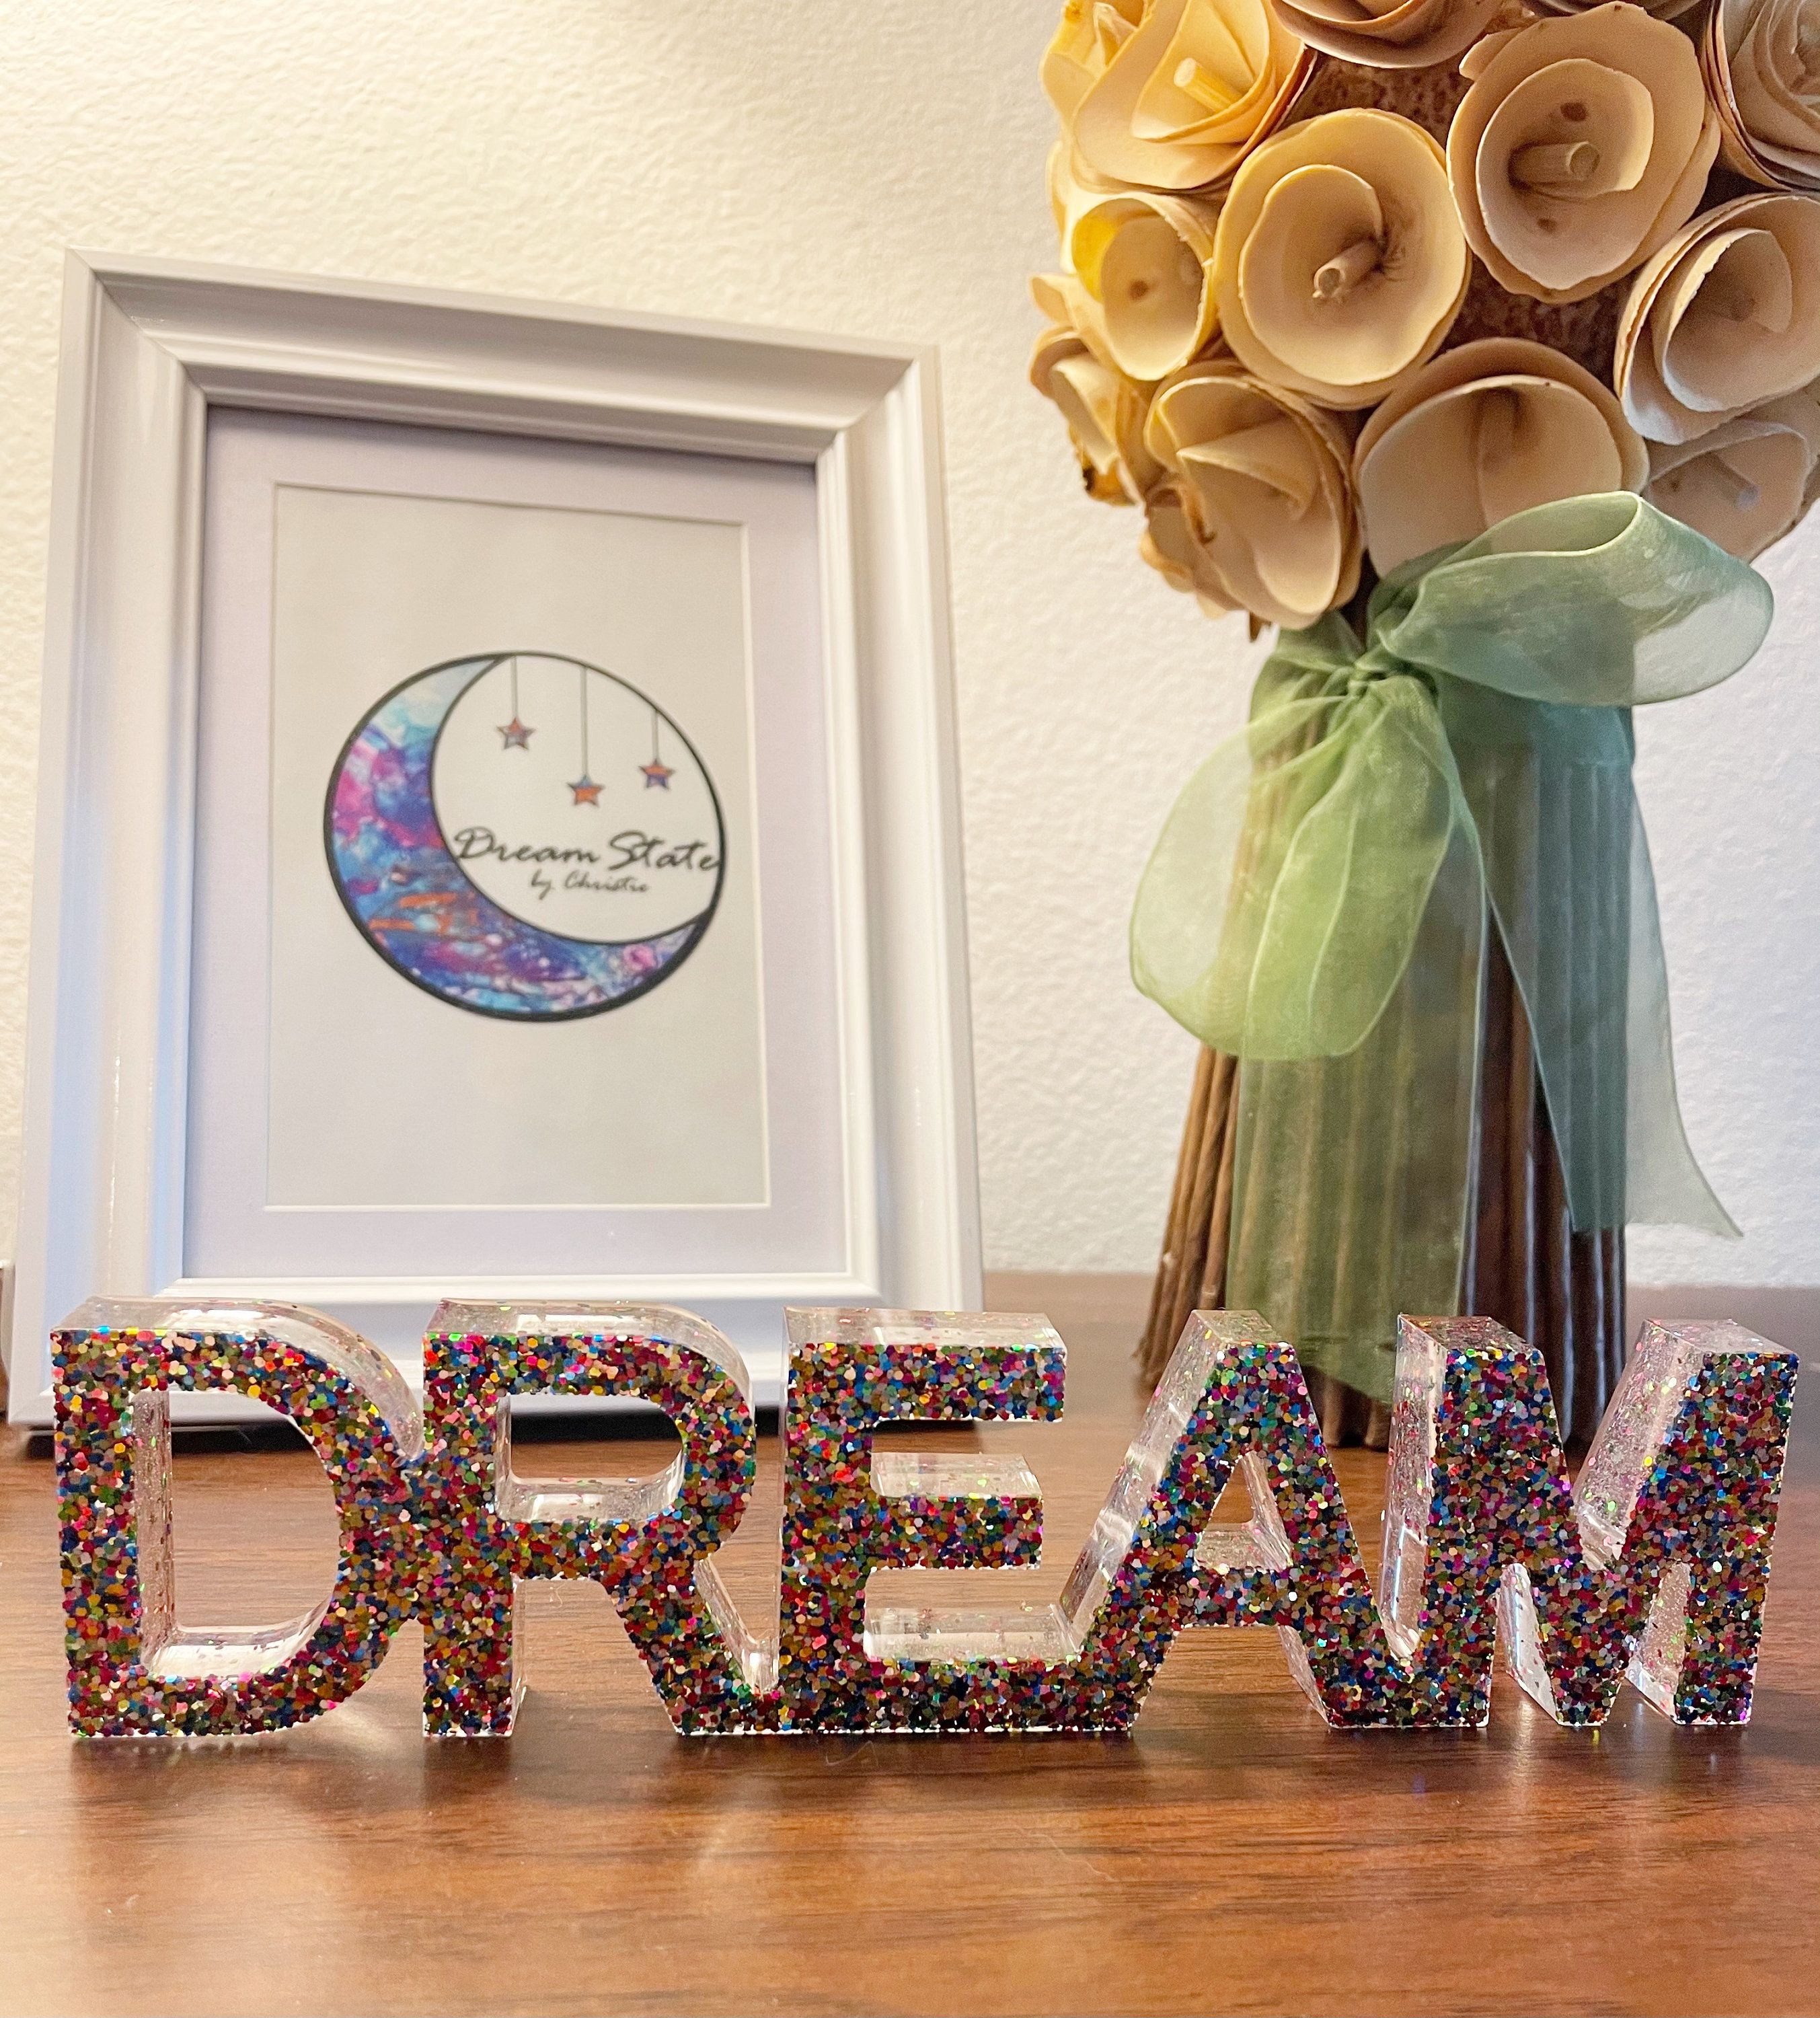 Excited to share this item from my #etsy shop: Dream - Handmade table top decor #homedecor #accentpiece #dream #glitter #resin #original #oneofakind #gift #stockingstuffer